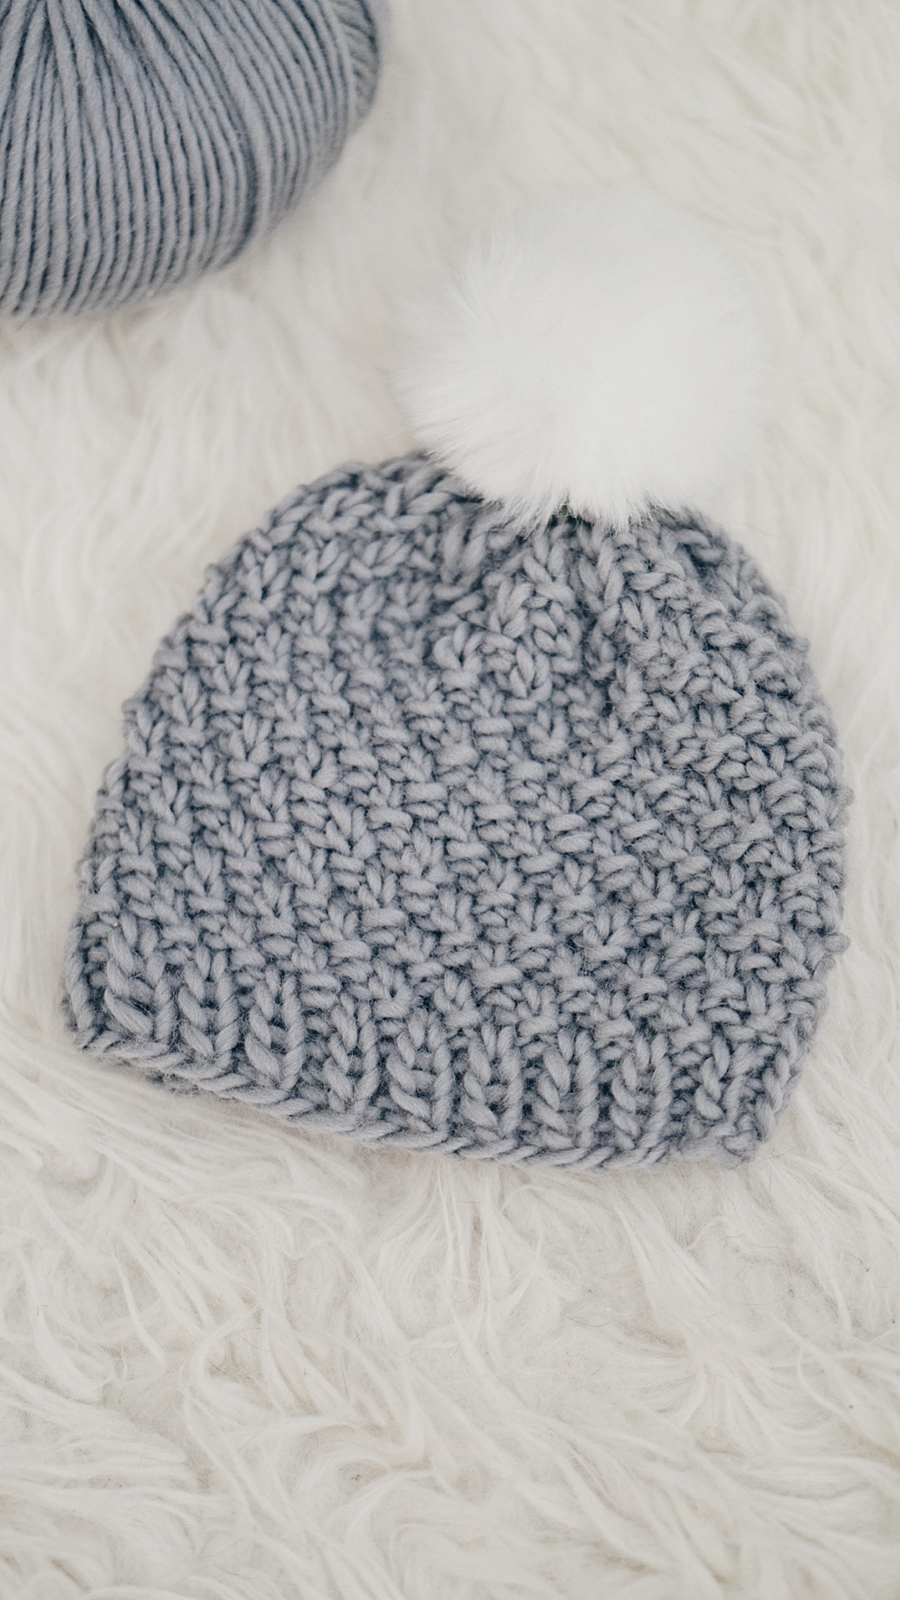 6556477d2a6 The moss stitch baby hat captures the all natural beauty of Peruvian wool  in its finest! A simple stitch repeating pattern creates a lovely texture